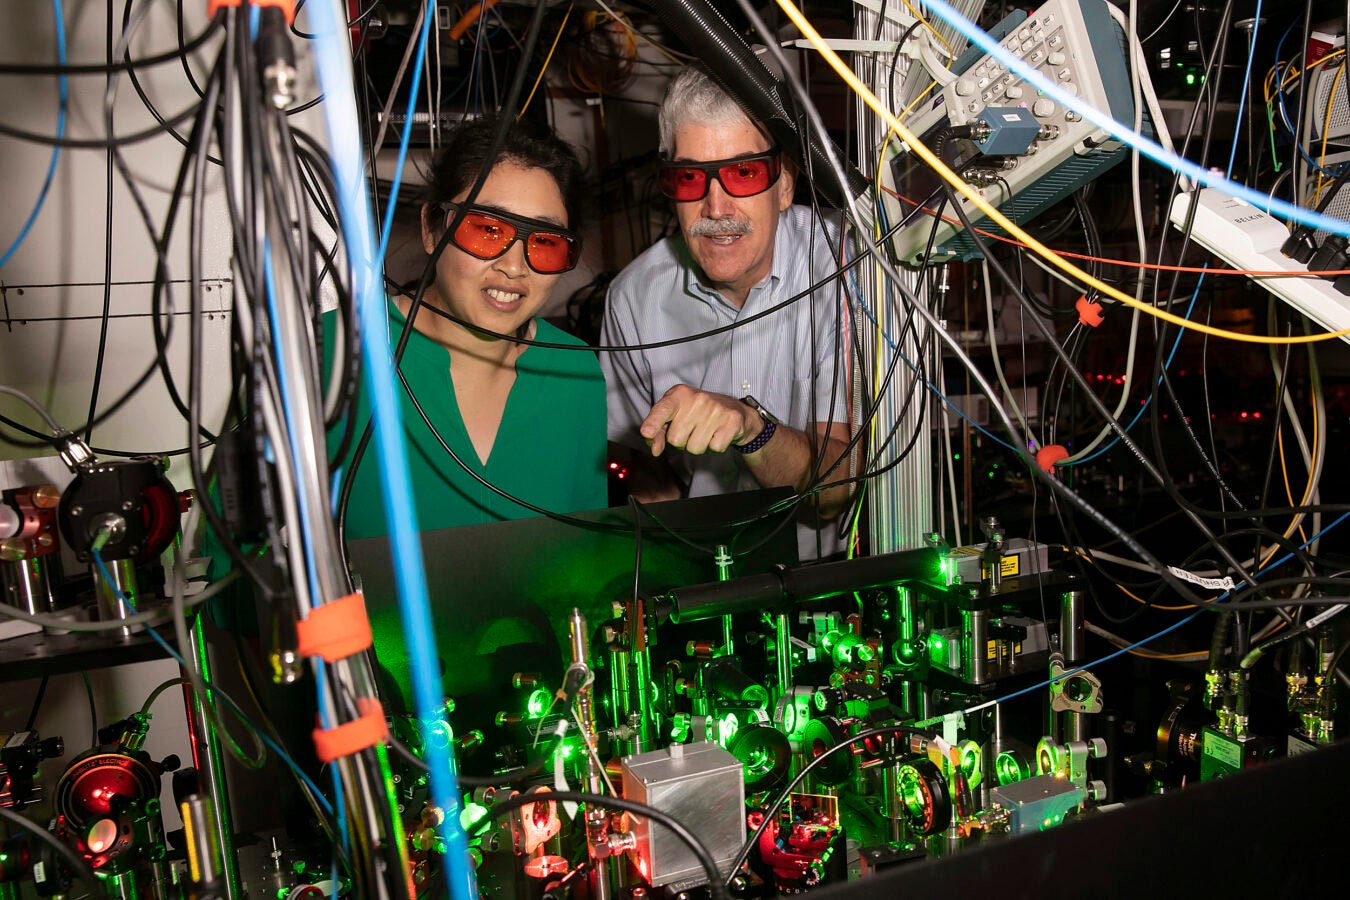 Using precisely focused lasers that act as optical tweezers